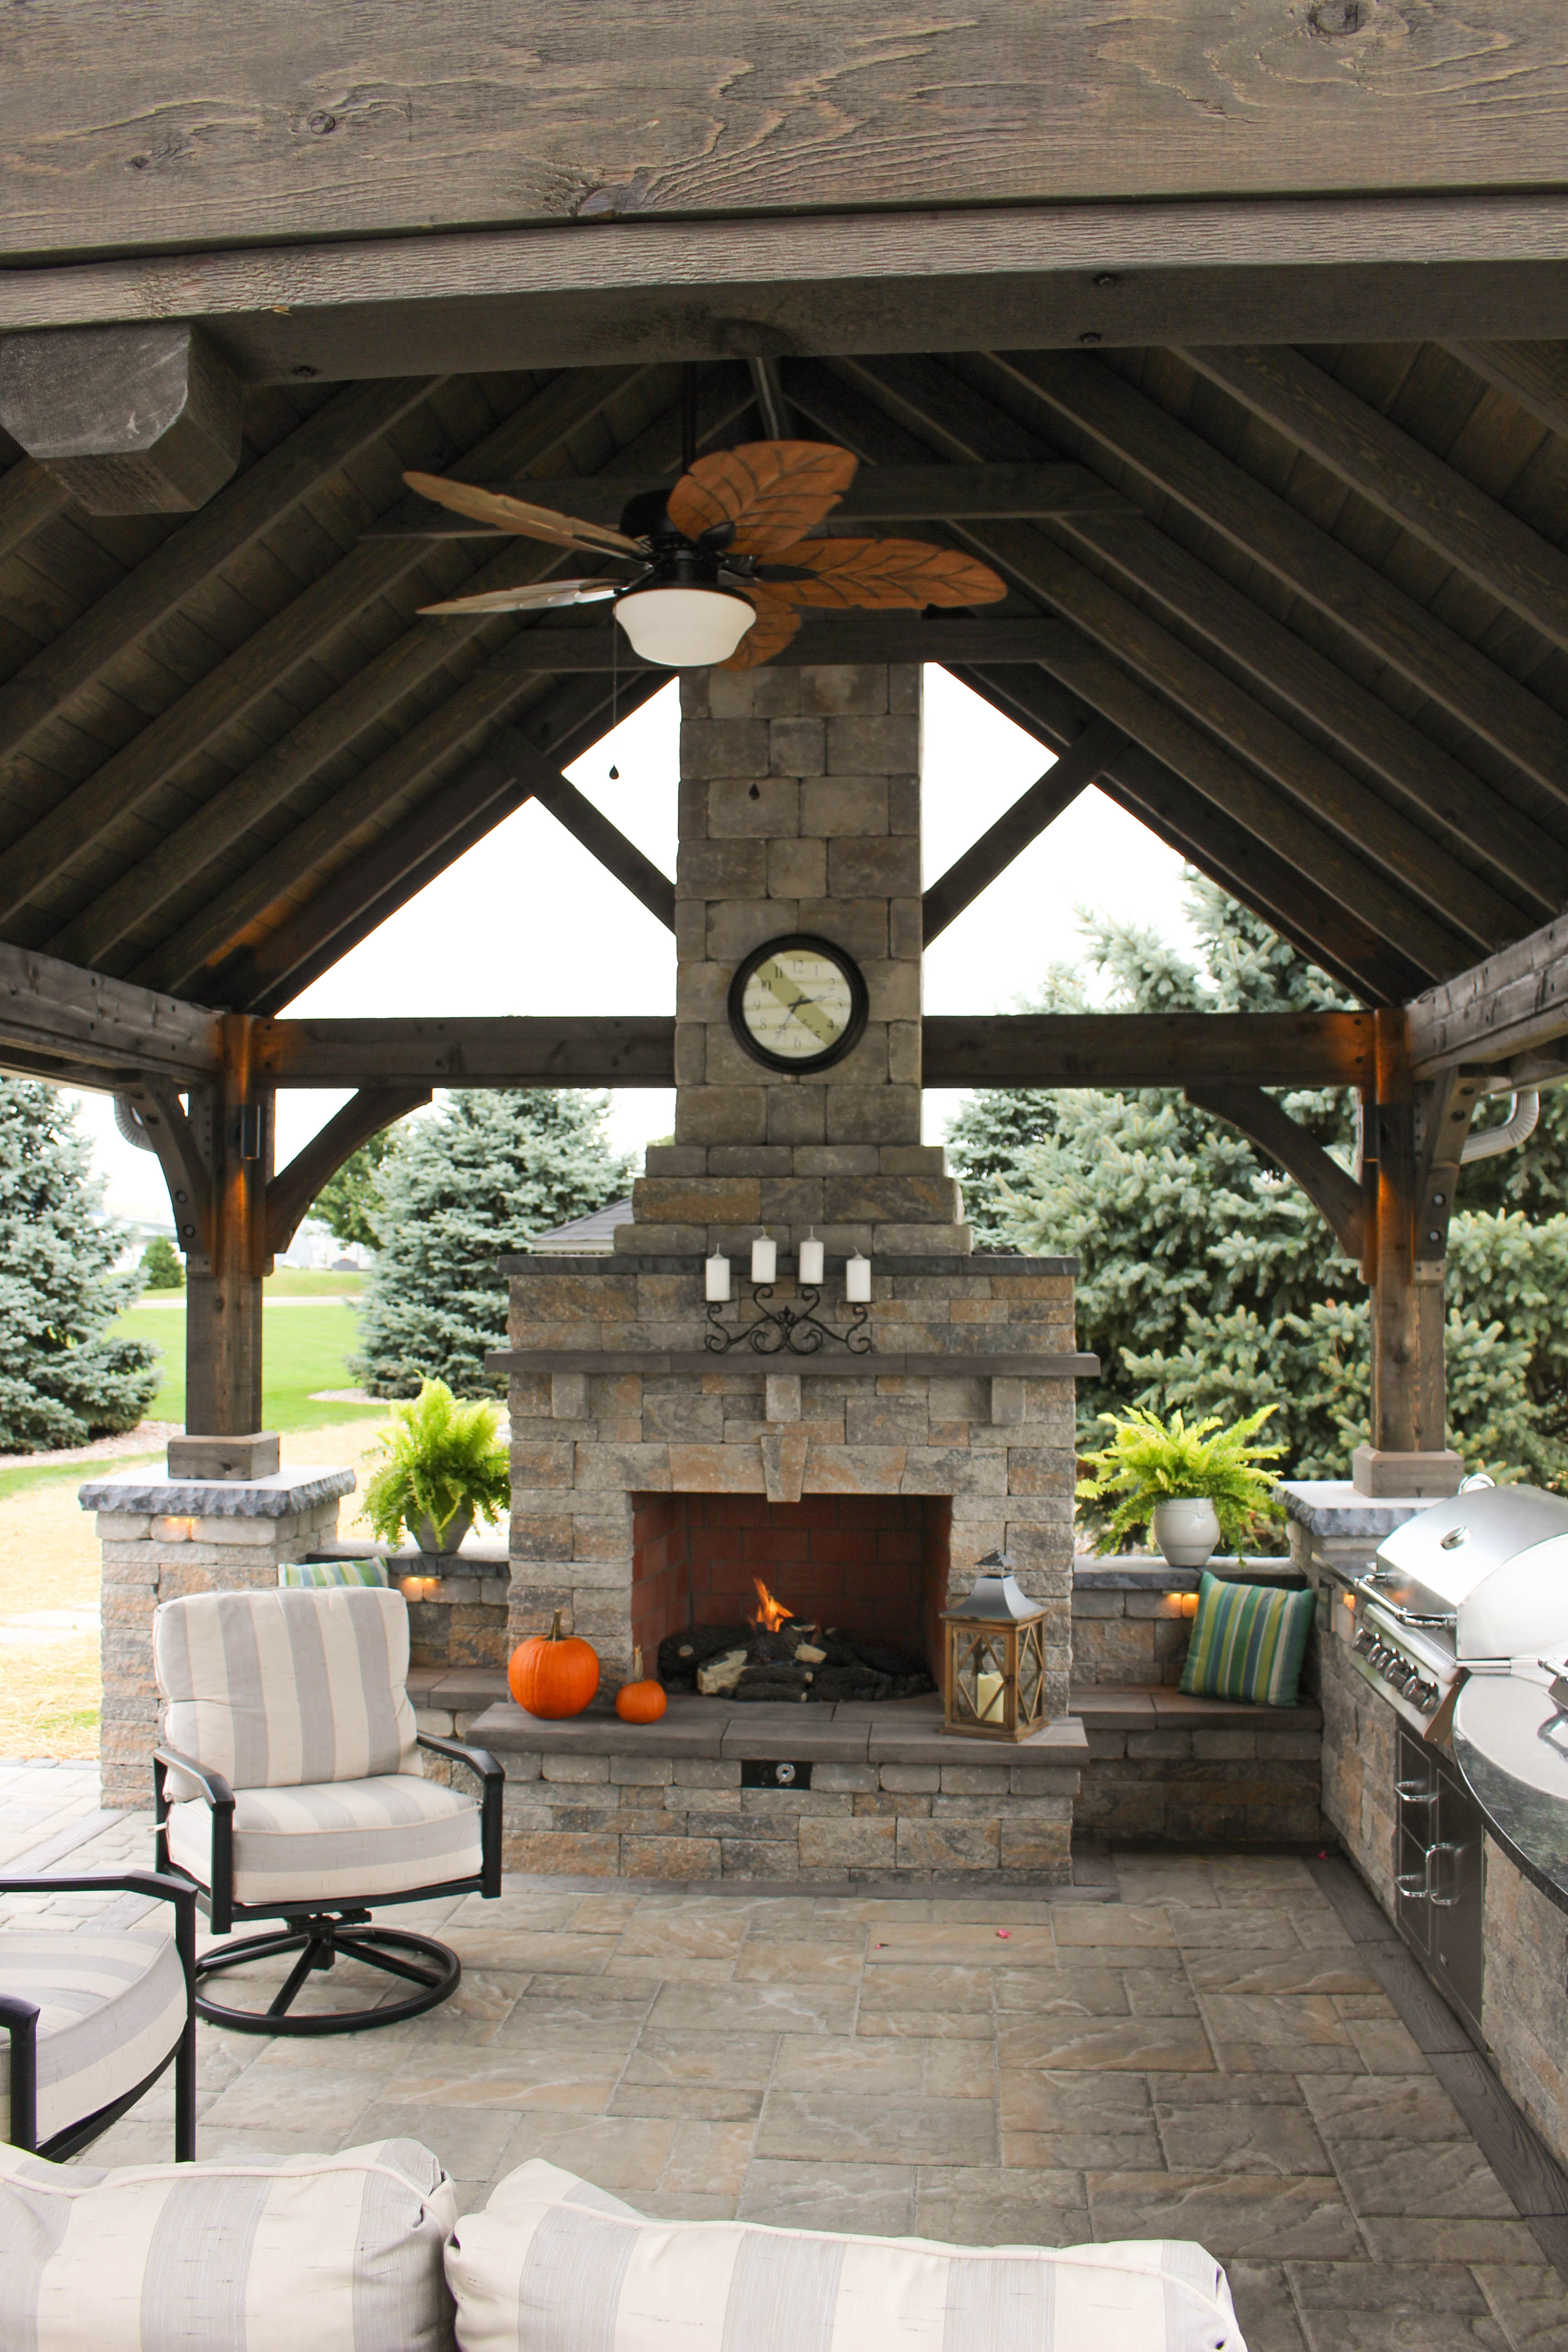 Outdoor Patio with Pavilion | See the Photos and Get a ... on Outdoor Patio Pavilion id=72430